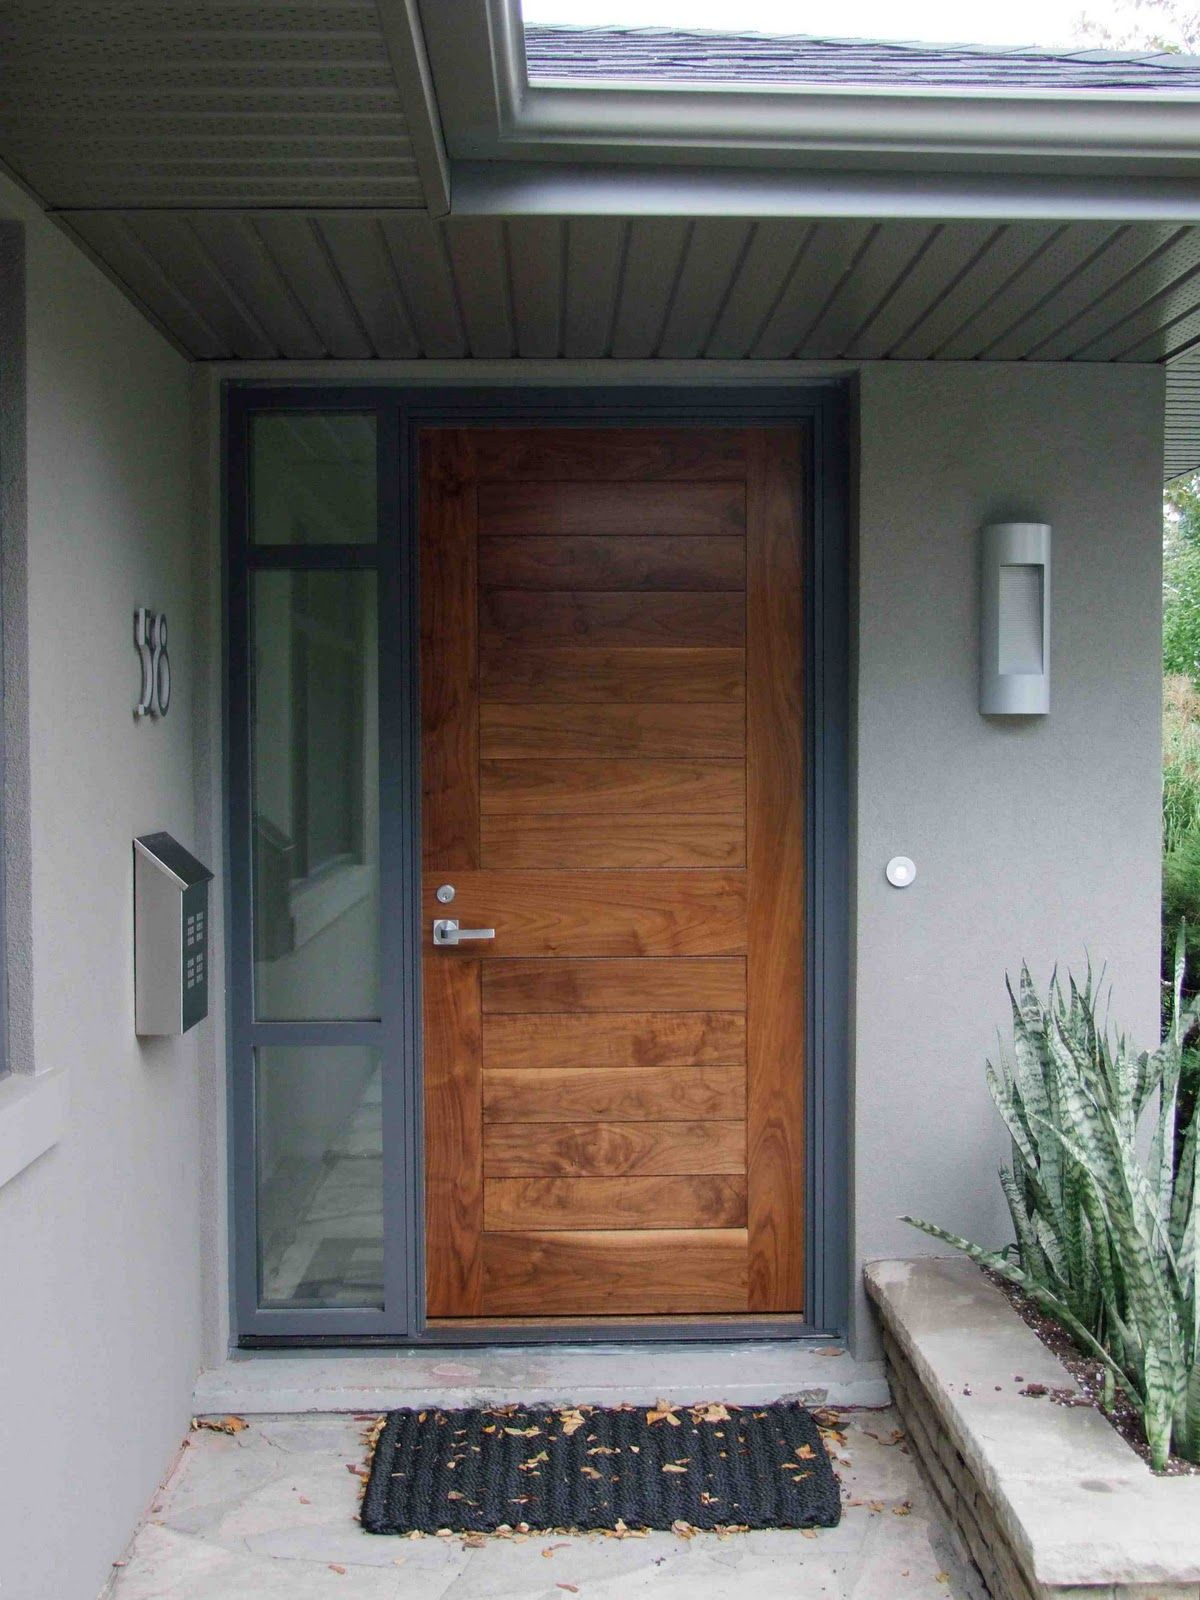 Creed 70 39 s bungalow makes a modern impression bungalow for Entrance door frame